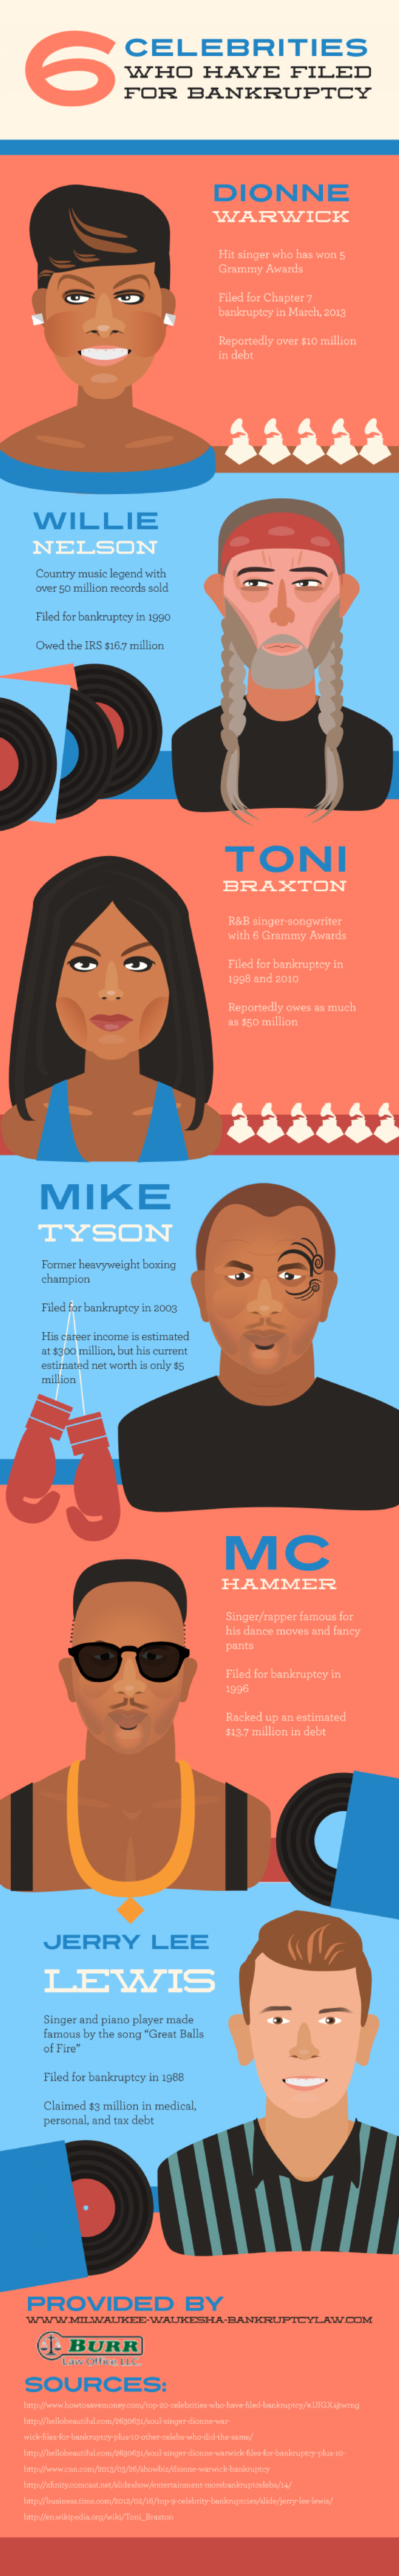 6 Celebrities Who Have Filed for Bankruptcy Infographic